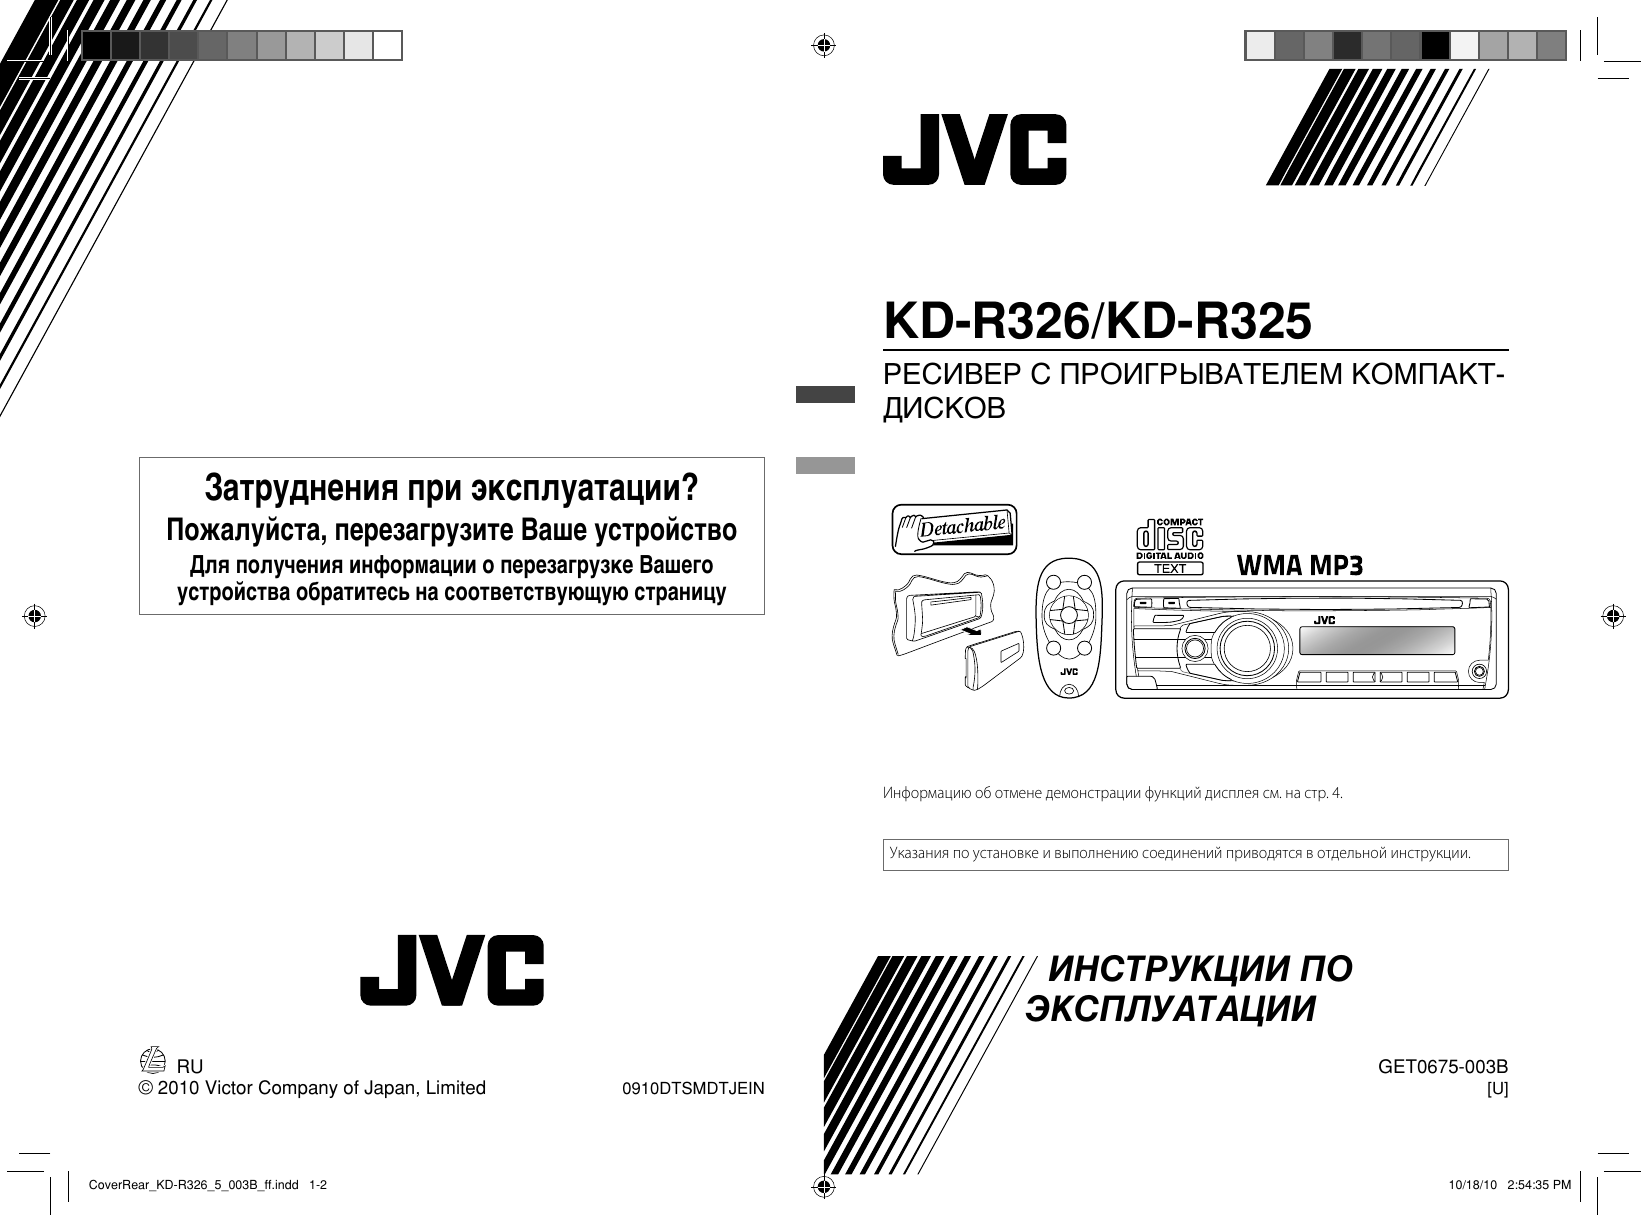 Jvc Kd R326 Wiring Diagram Solutions Kdhdr50 Fixya R325u Coverrear 003a F User Manual R326u R330